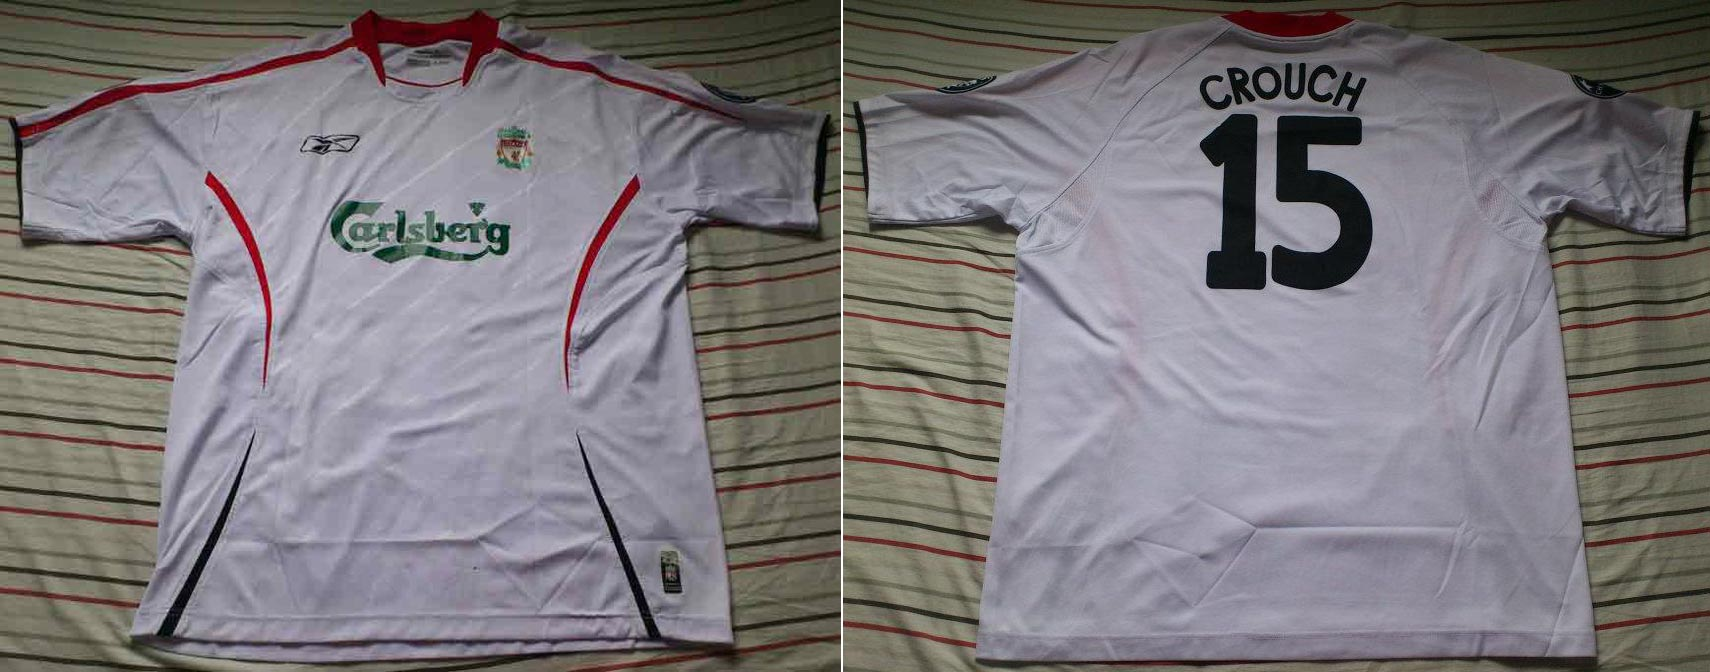 09d18ef21 2005-06 Champions League Away player shirt short sleeve № 15 Peter Crouch  (small Carlsberg logo) - image with site  www.facebook.com LiverpoolShirtsCollector